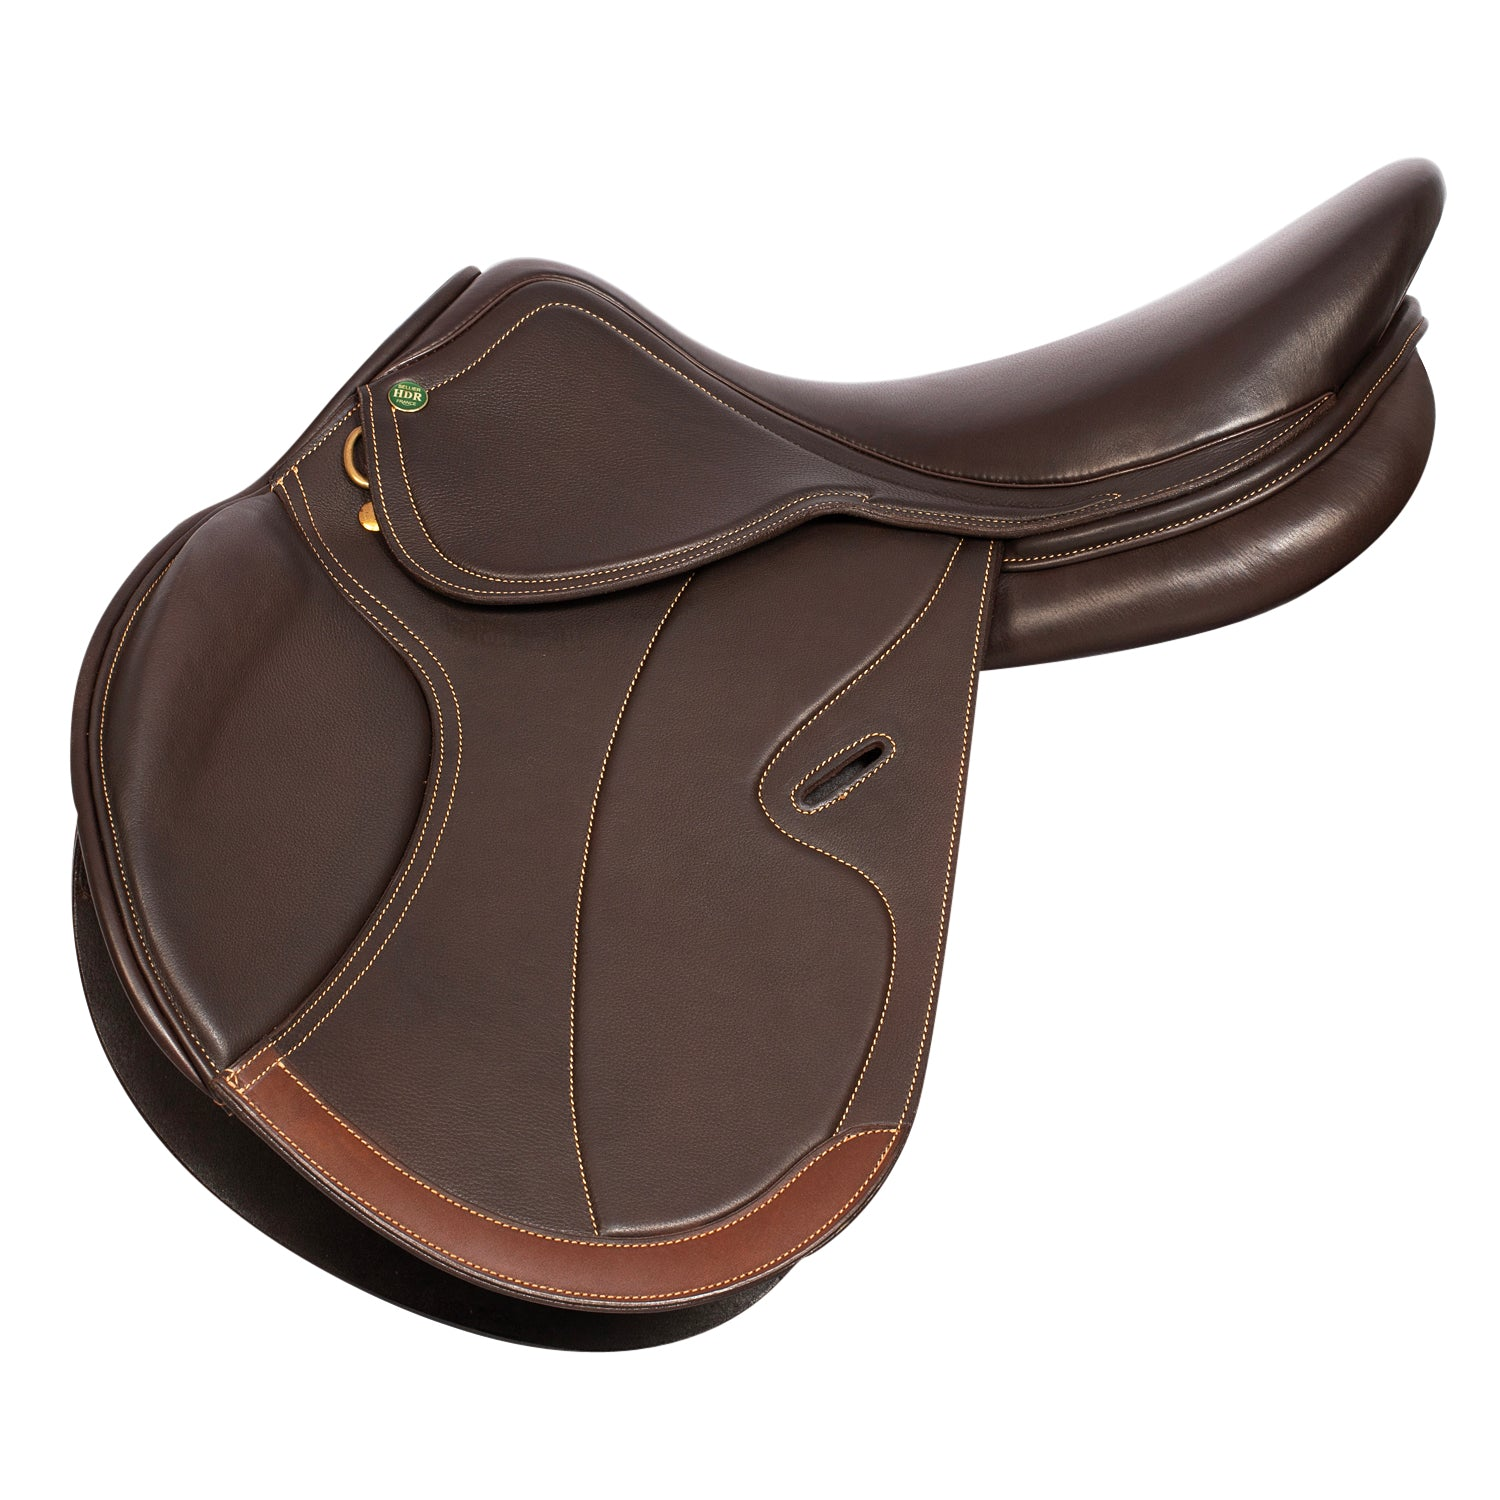 Devrel Luxembourg Close Contact Saddle - Short Flap - Henri de Rivel - Breeches.com